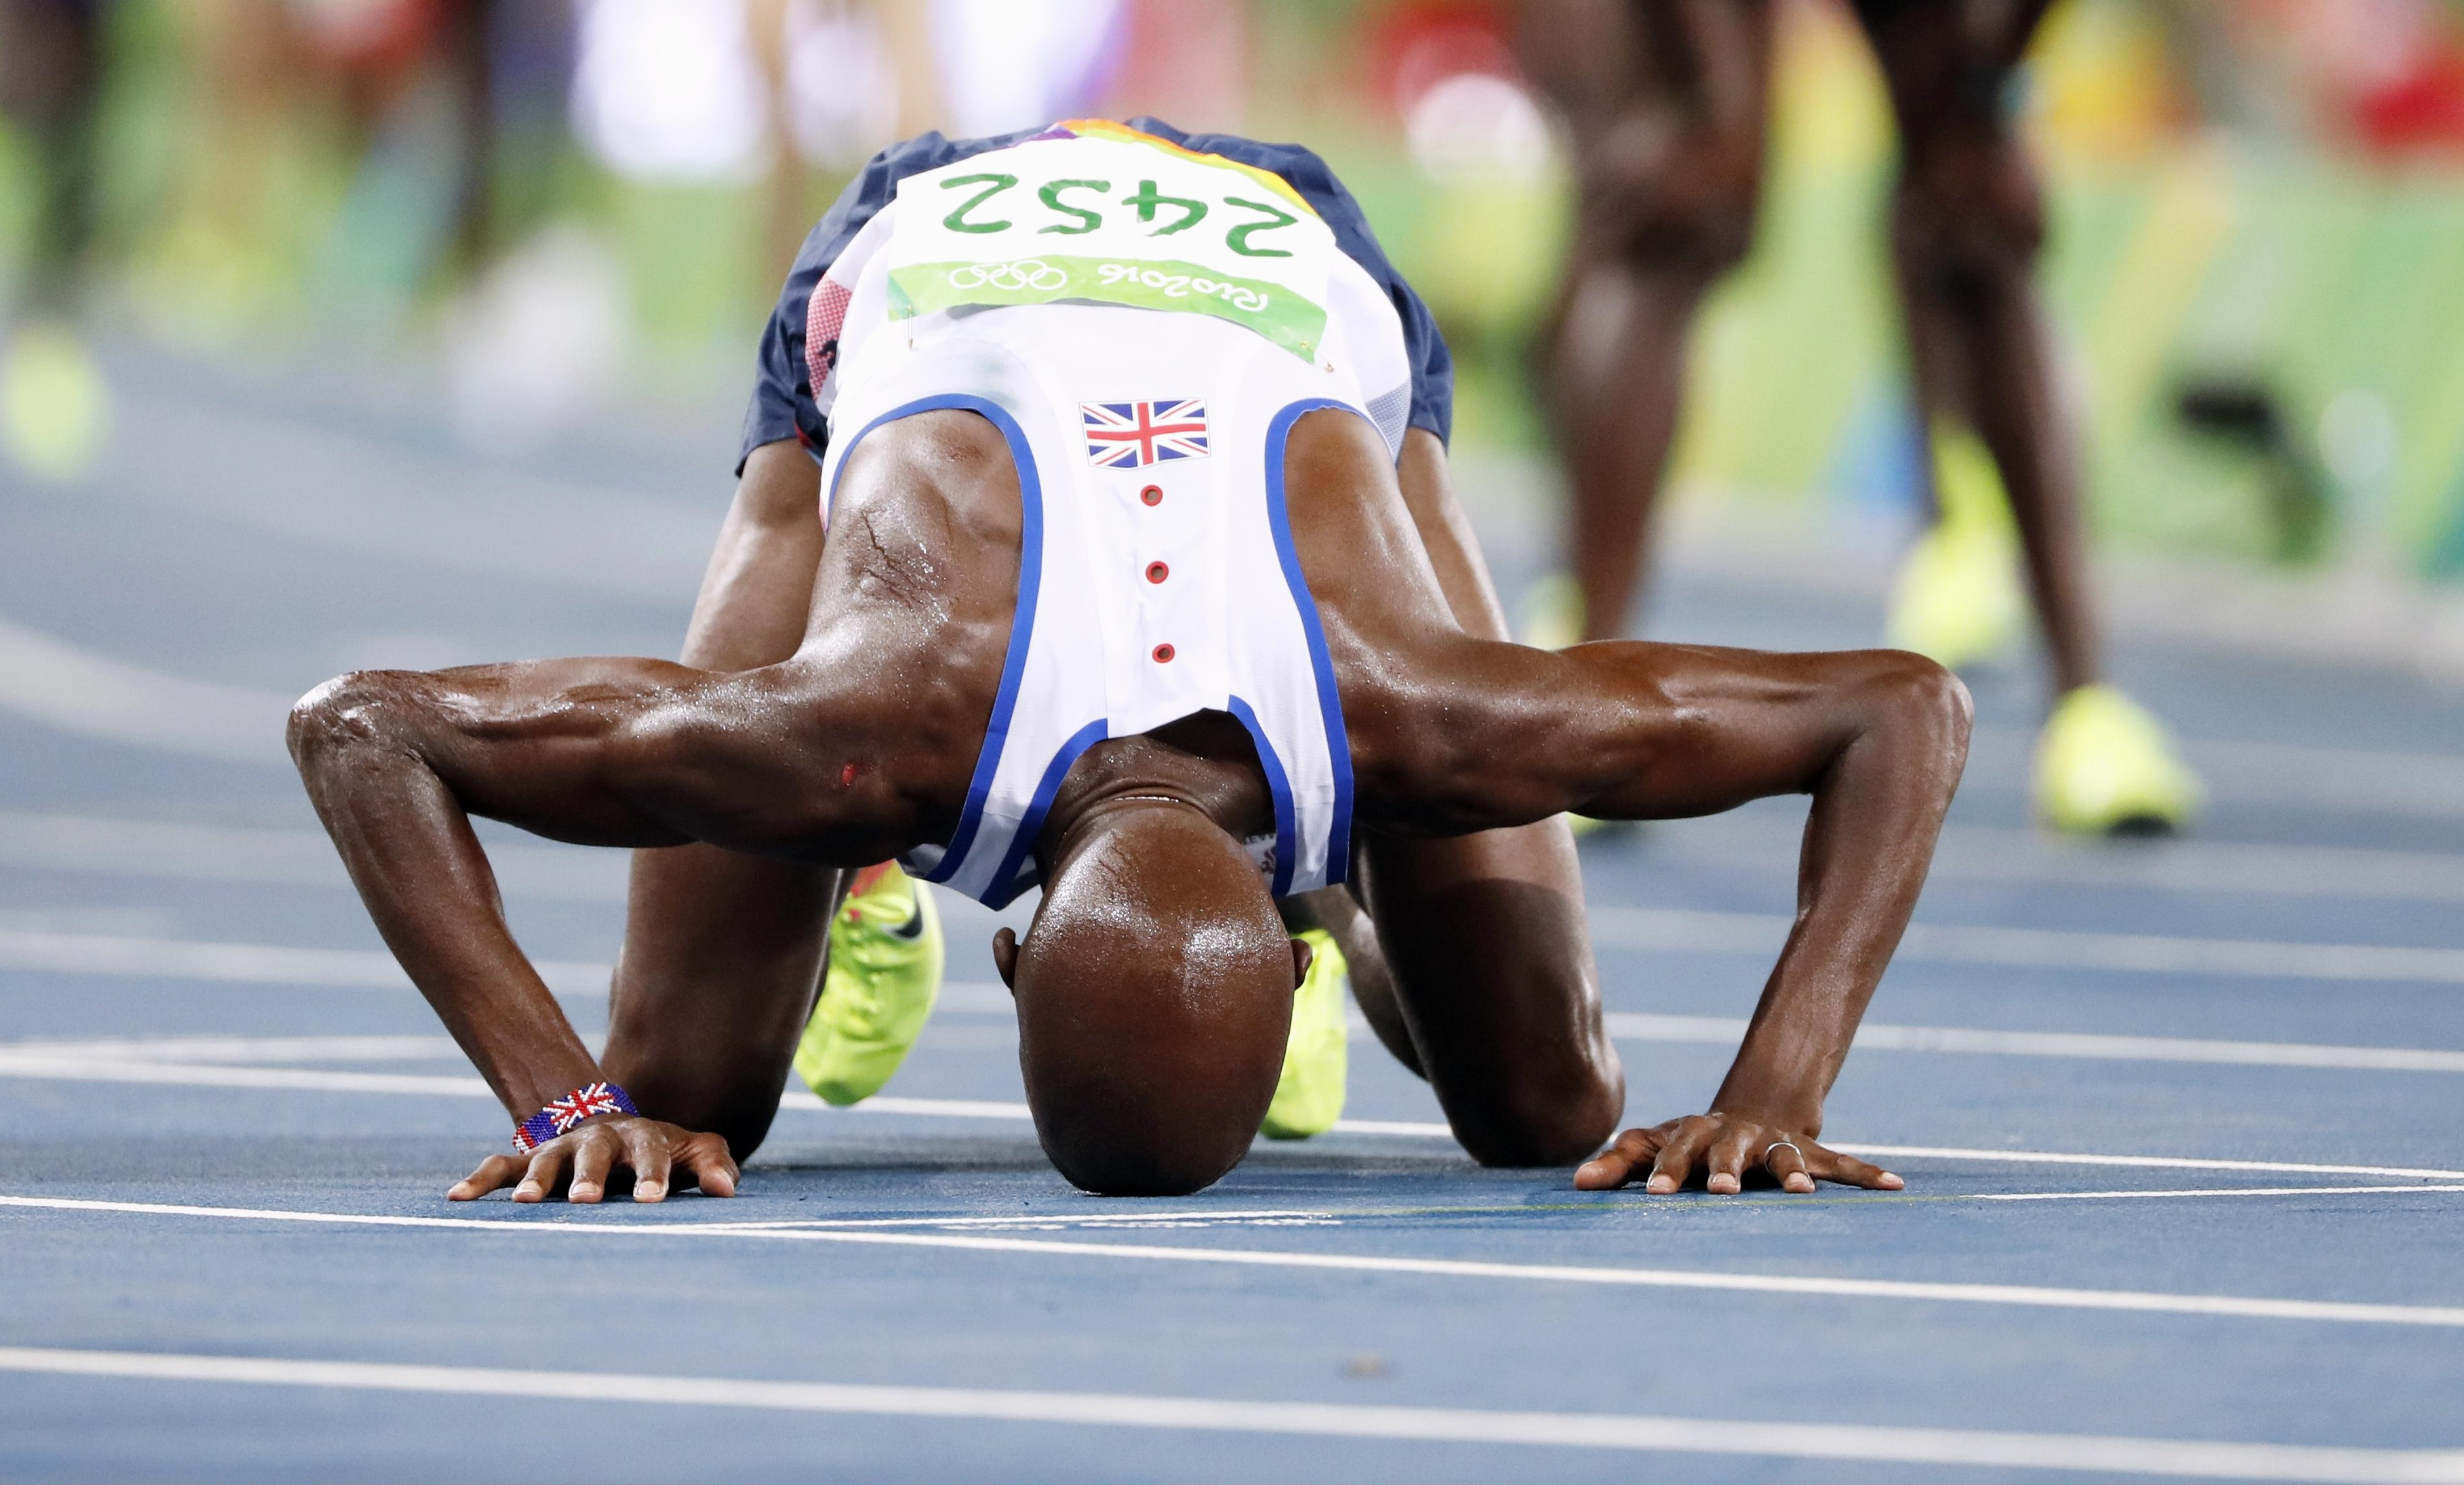 Britain's Mo Farah kisses the track after winning the men's 10,000-meter final during the 2016 Summer Olympics in Rio de Janeiro on Saturday. | KYODO